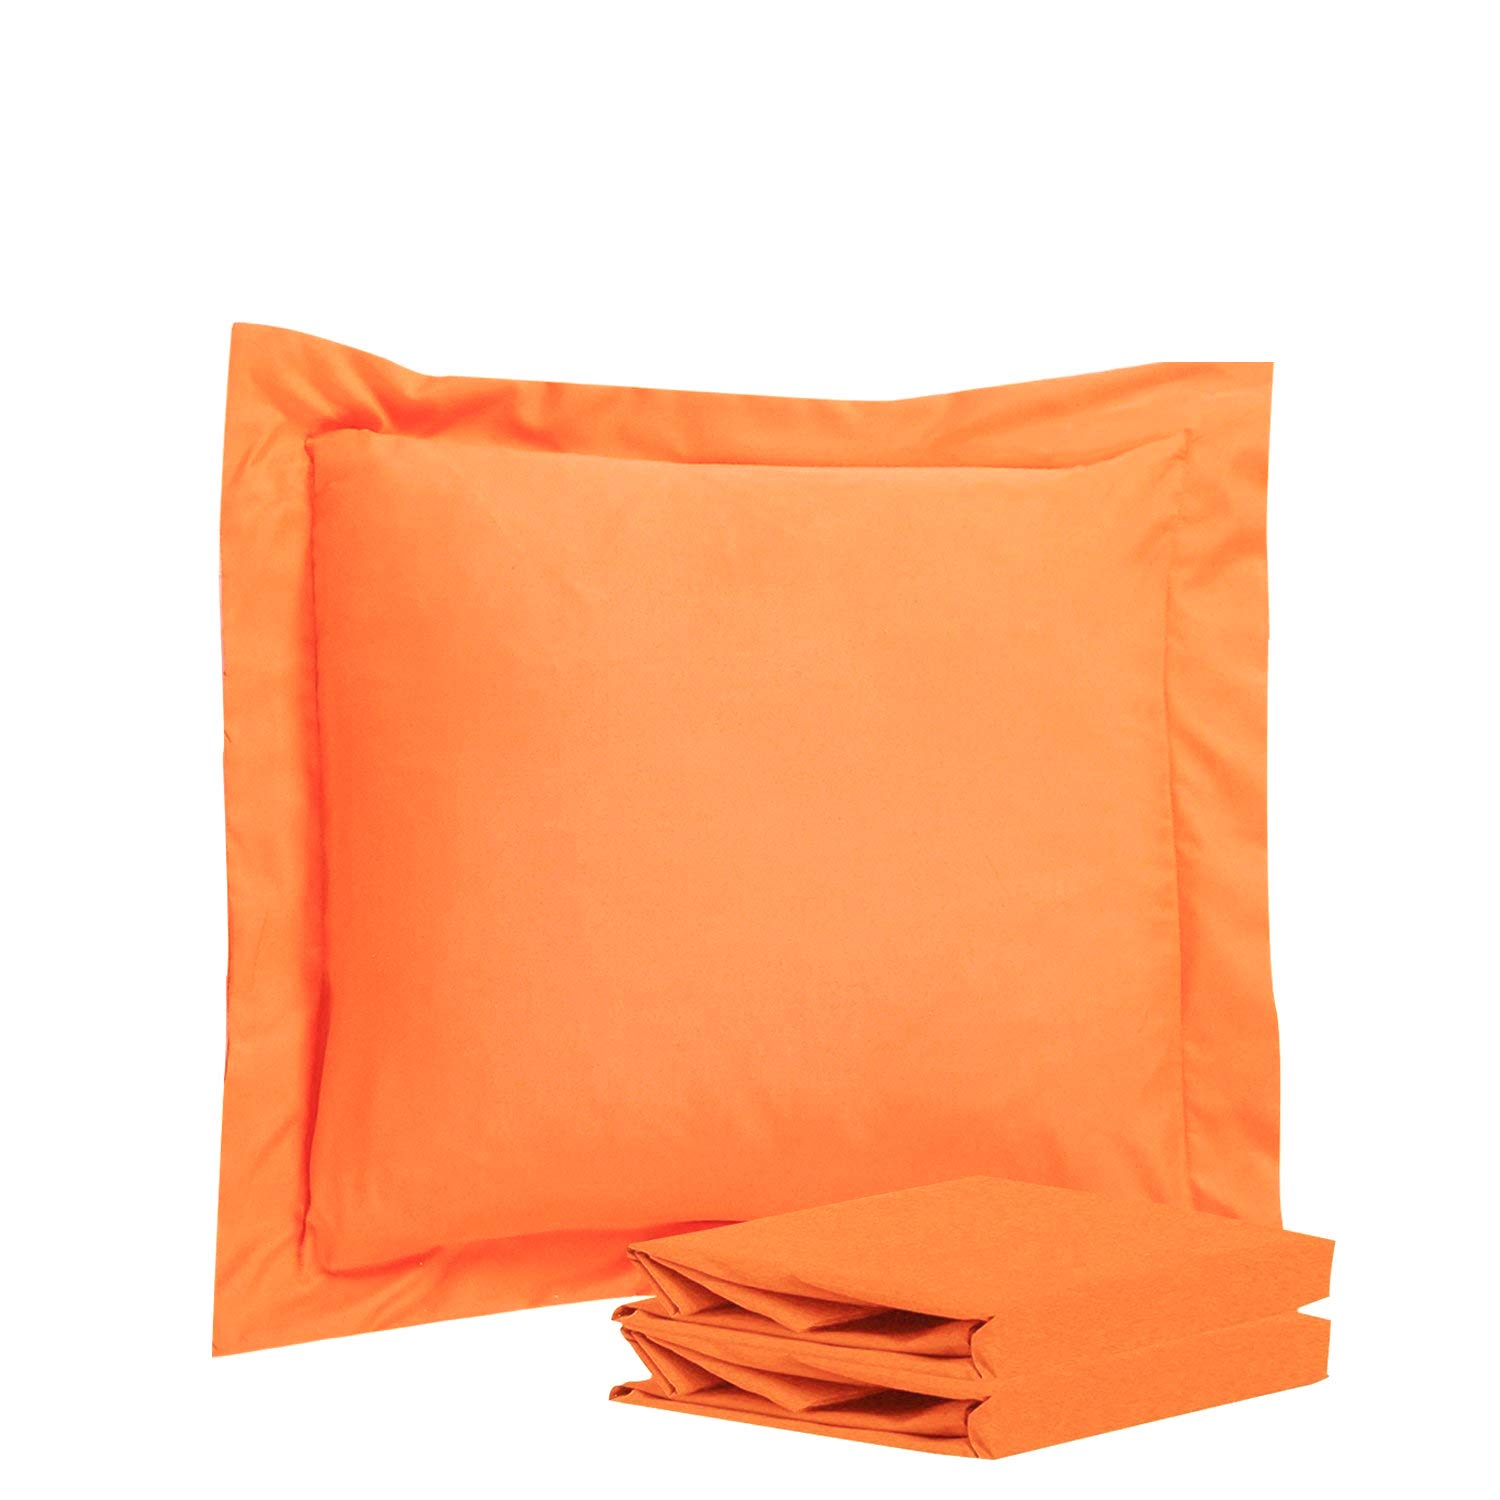 NTBAY 100% Brushed Microfiber European Square Throw Pillow Cushion Cover Set of 2, Soft and Cozy, Wrinkle, Fade, Stain Resistant (26x 26 inches, Orange)